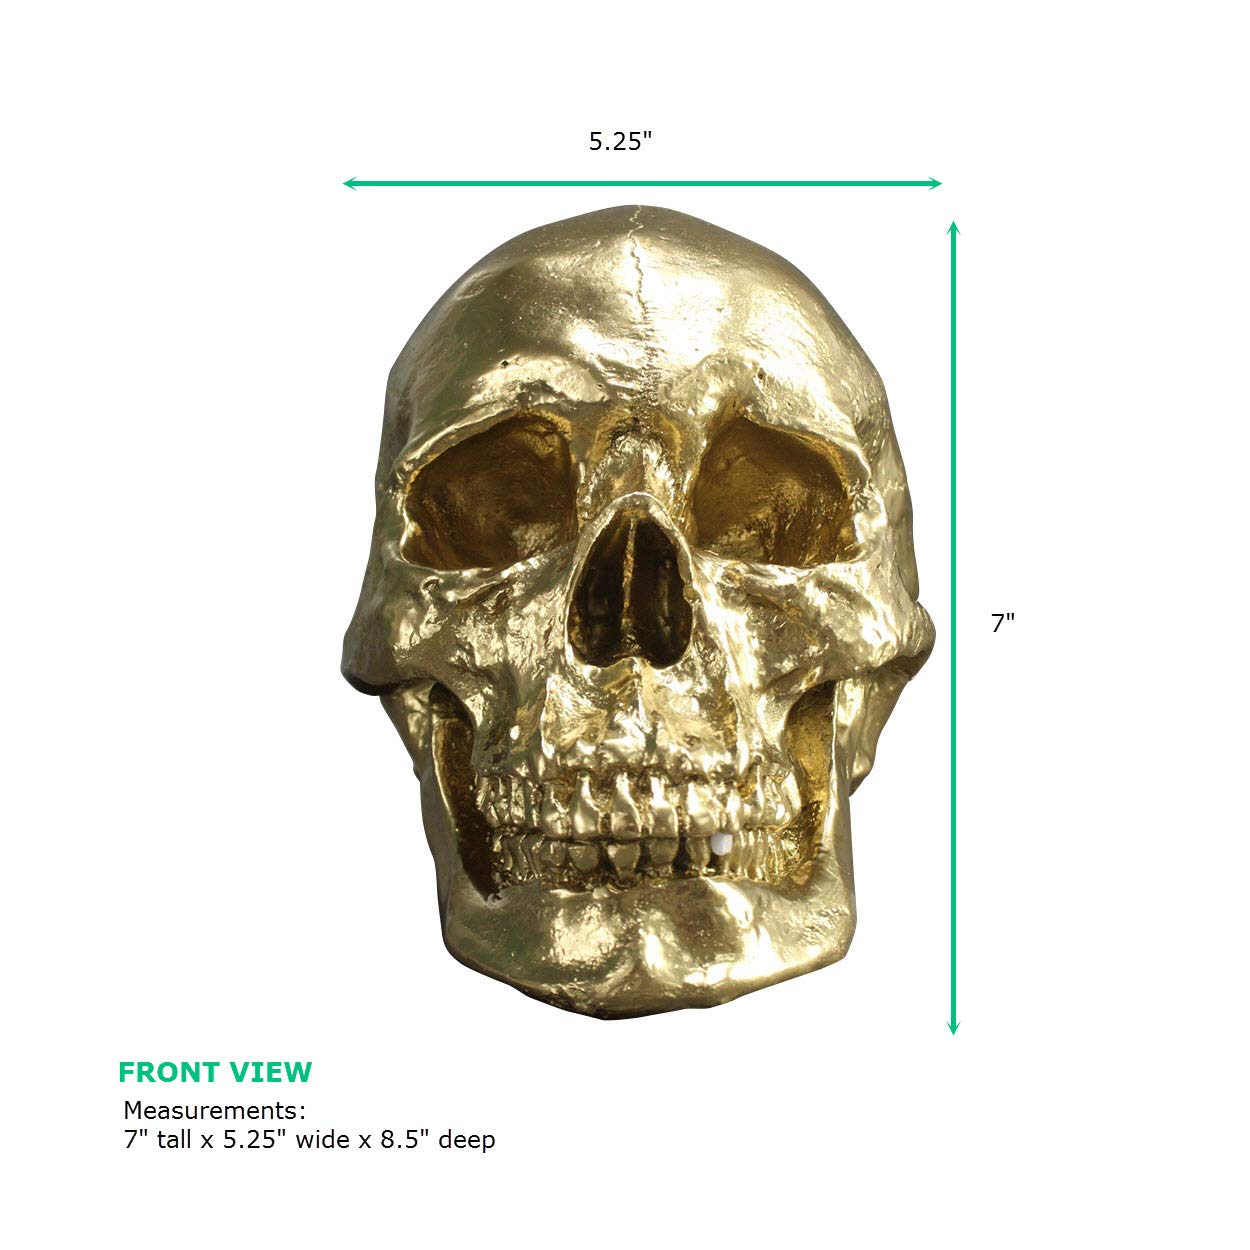 Wall Charmers Life Size Human Skull - 8.5'' Gold Faux Human Anatomy - Table Top Skeleton Head Home Decor by Wall Charmers (Image #5)